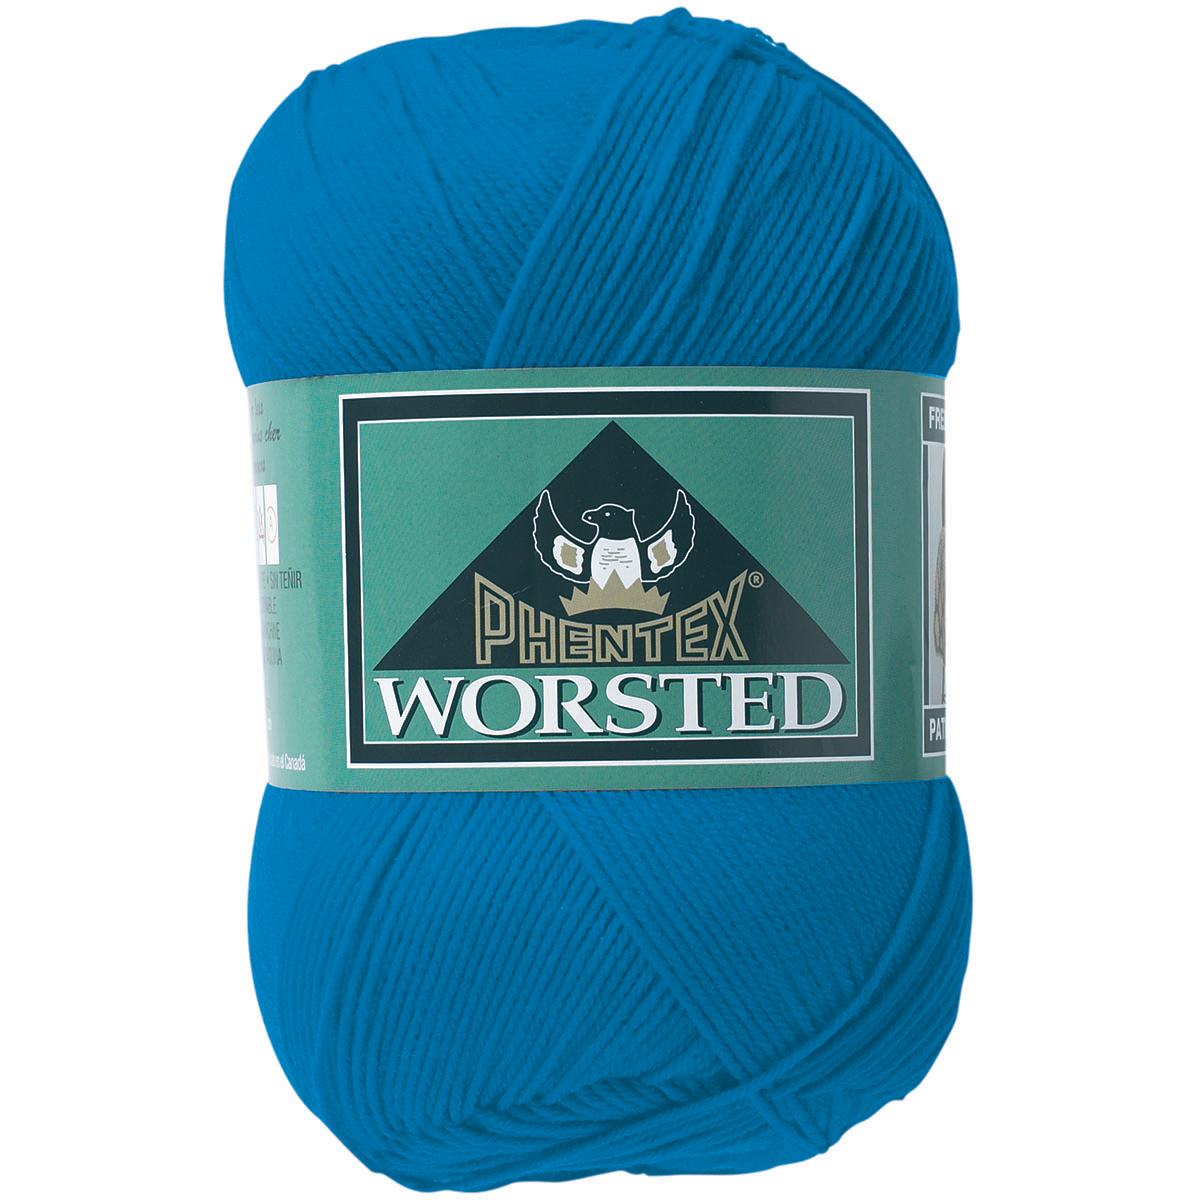 ... Knitting-Warehouse Softness Meter - Rating 3 ? Phentex? Worsted Yarn